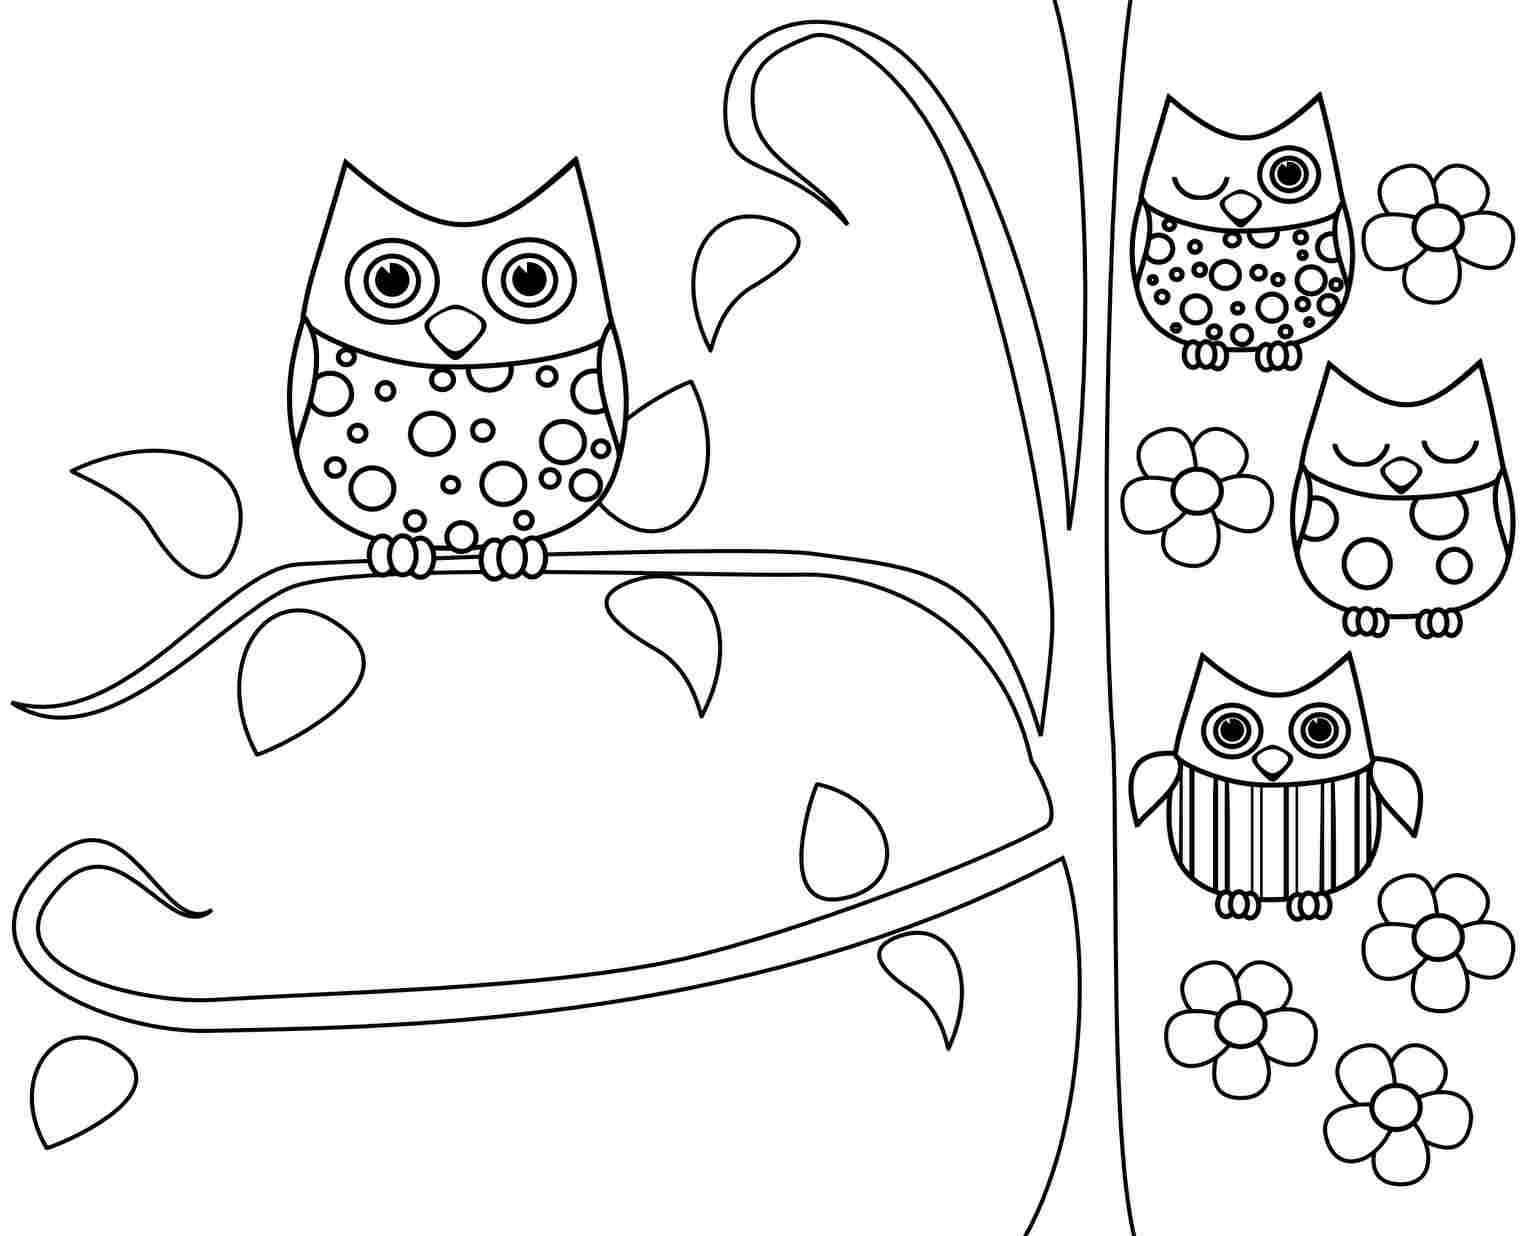 1532x1236 Free Baby Owl Coloring Pages Of Owls